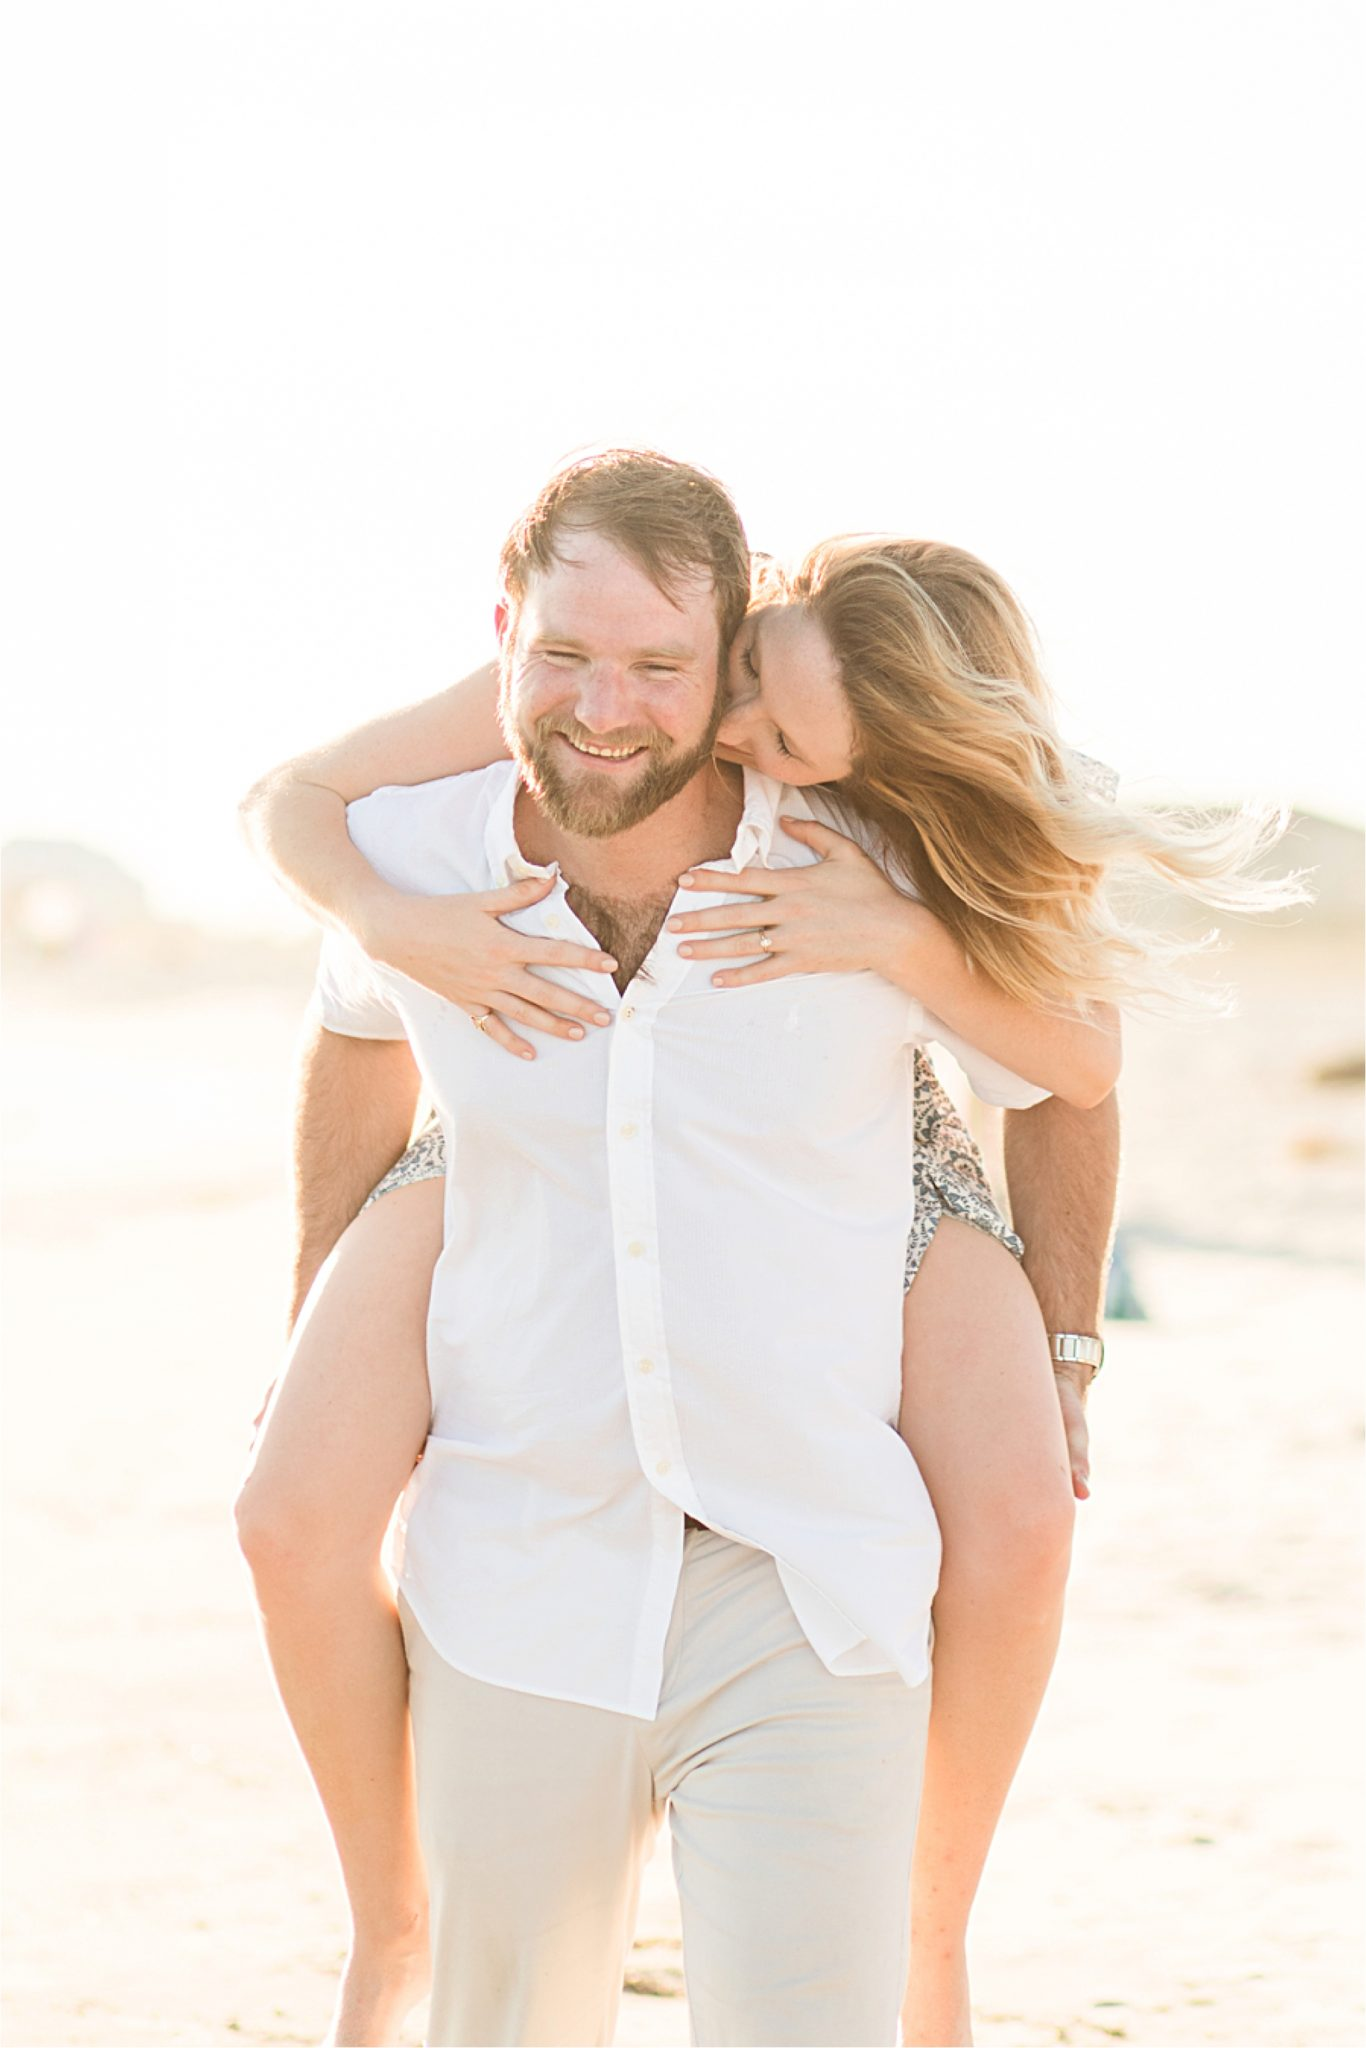 Beach engagement photos, Daulphin Island, Mobile wedding photographer, Candid couples, Romantic engagement shoot inspiration